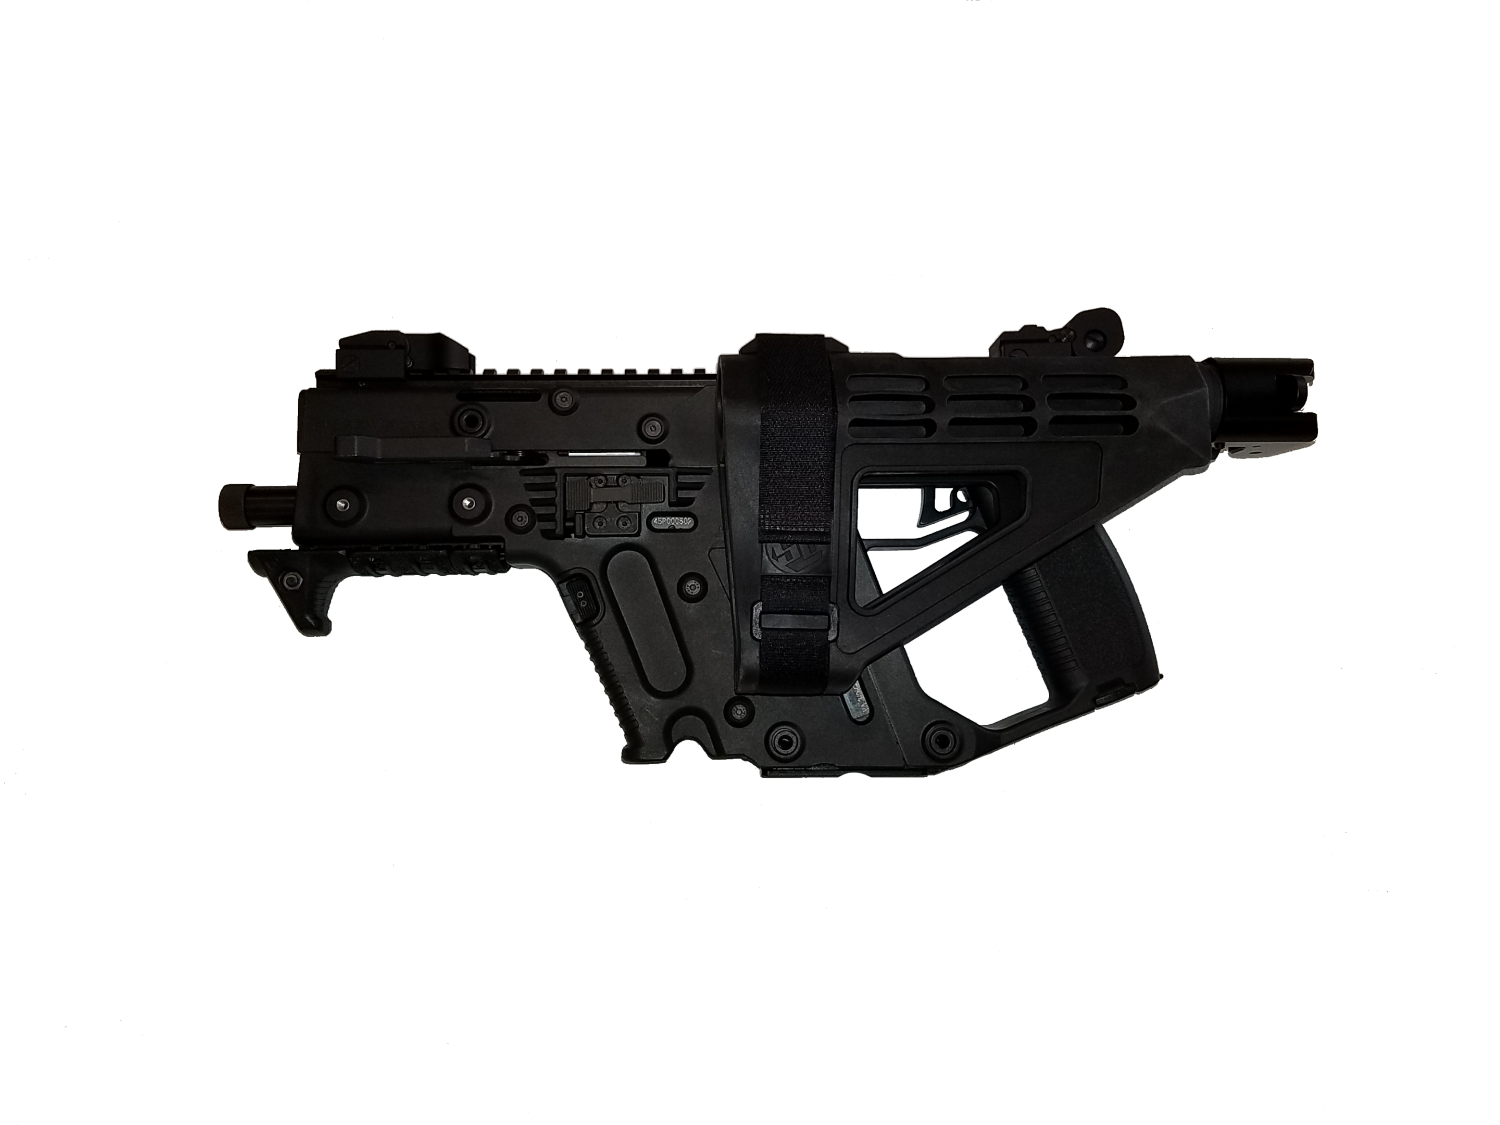 Built arms png. American company has recently